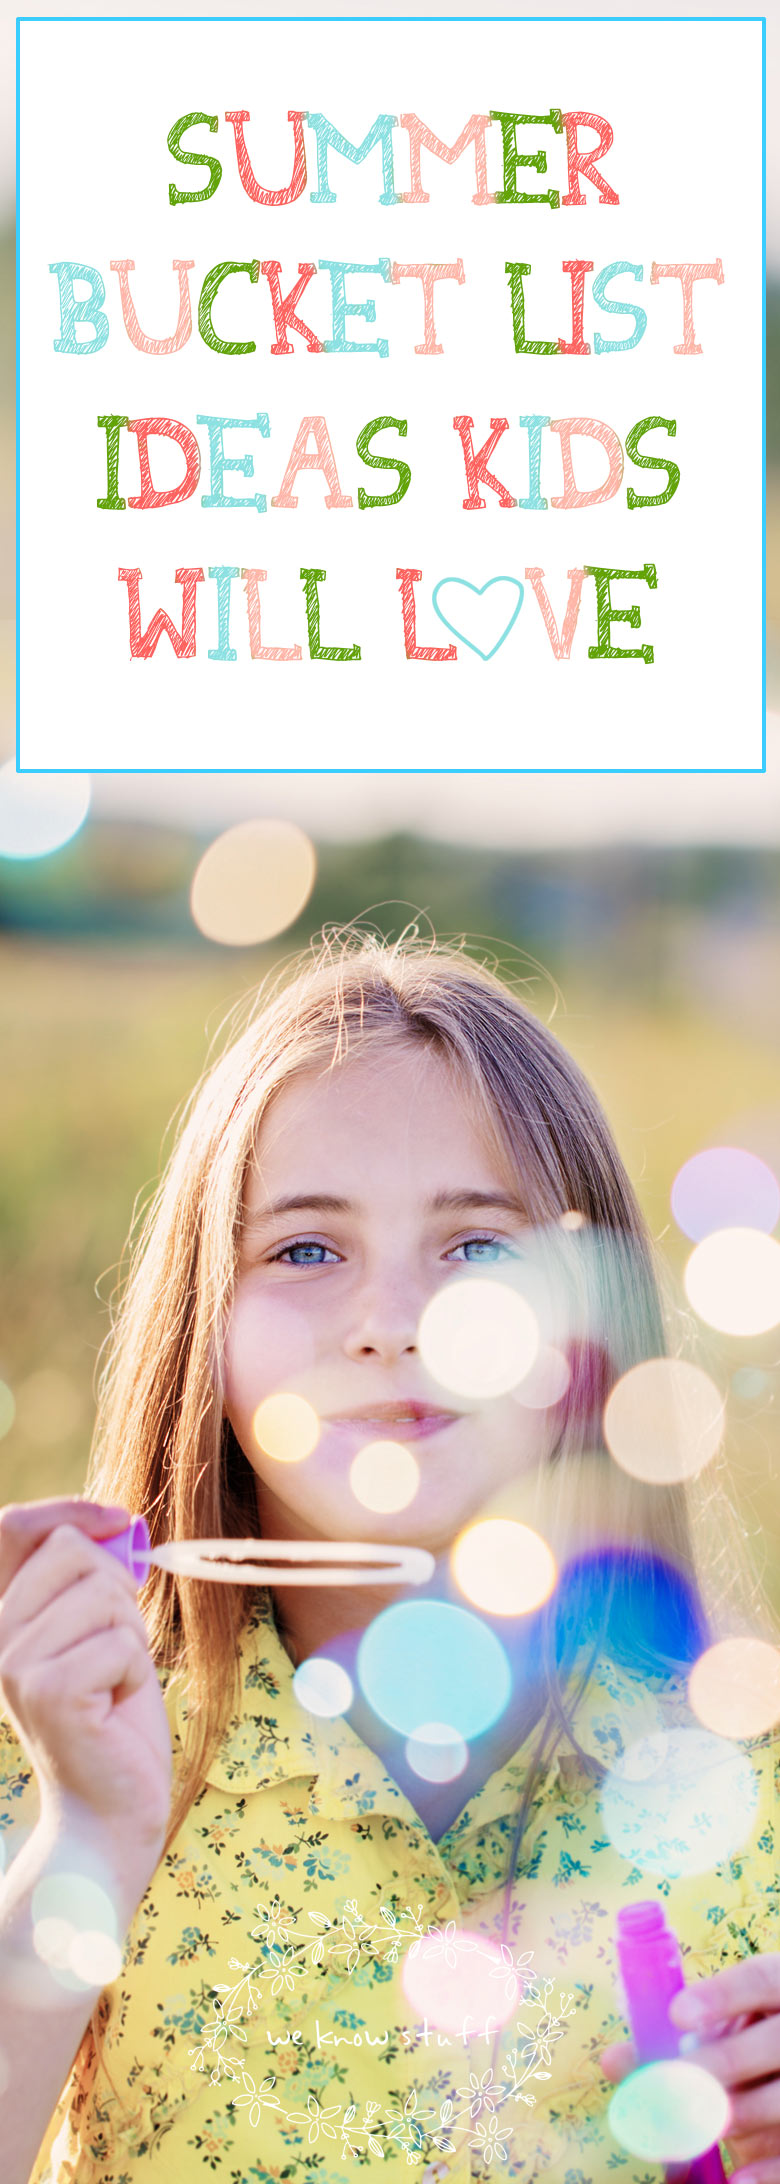 Our Summer Bucket List Ideas Kids Will Love has 50 ways to have fun and take it easy over summer break. Boredom is a gift and we want our kids to enjoy it! Download our printable to share with your kids.